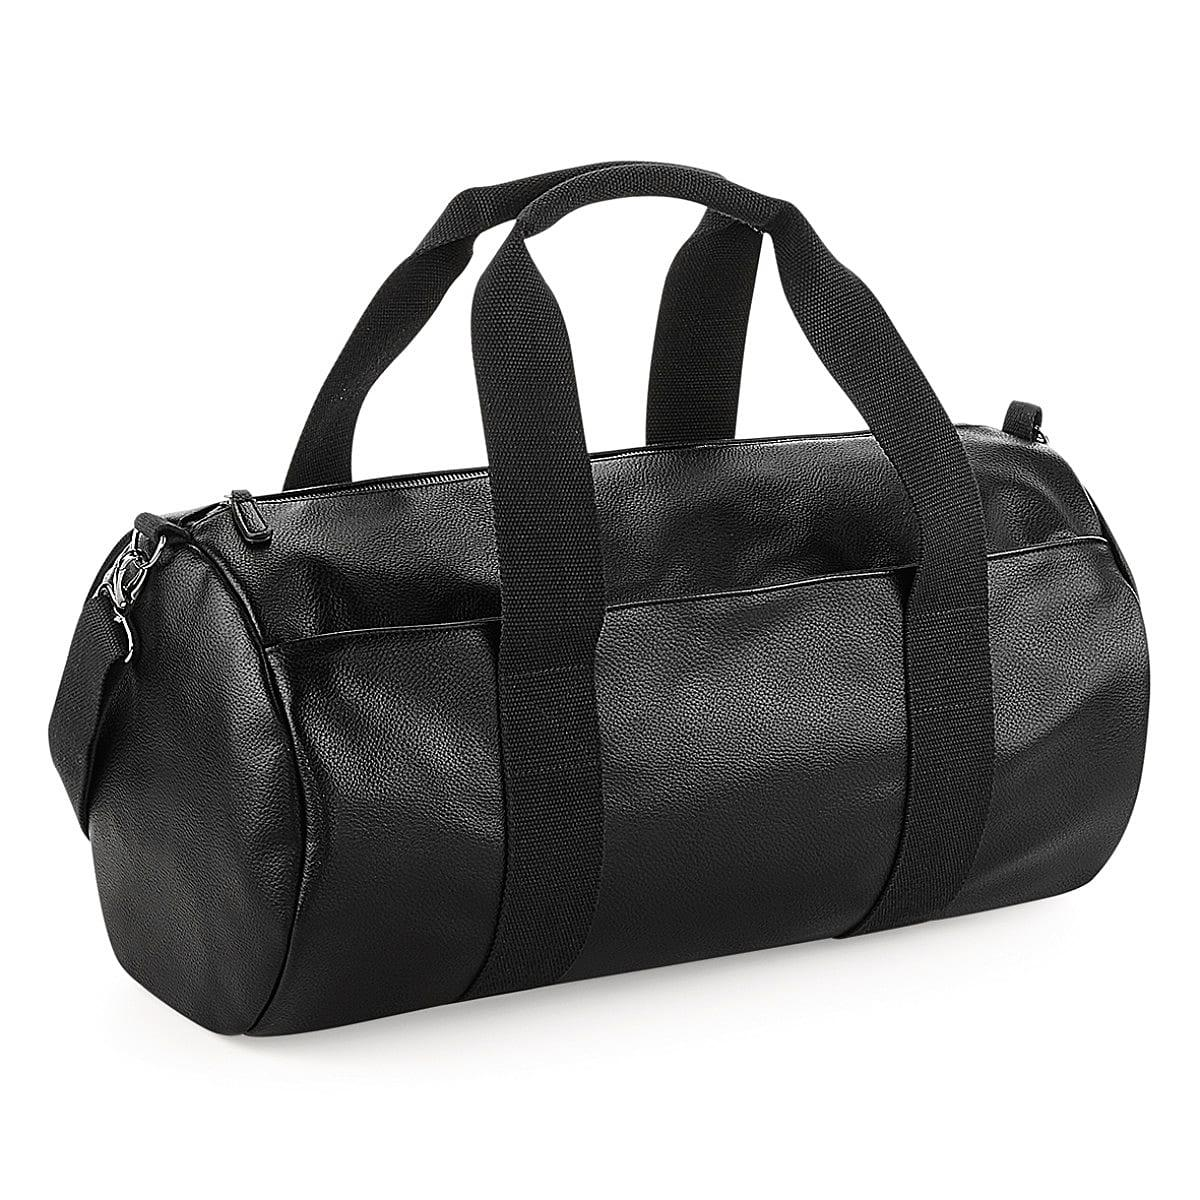 Bagbase Faux Leather Barrel Bag in Black (Product Code: BG258)